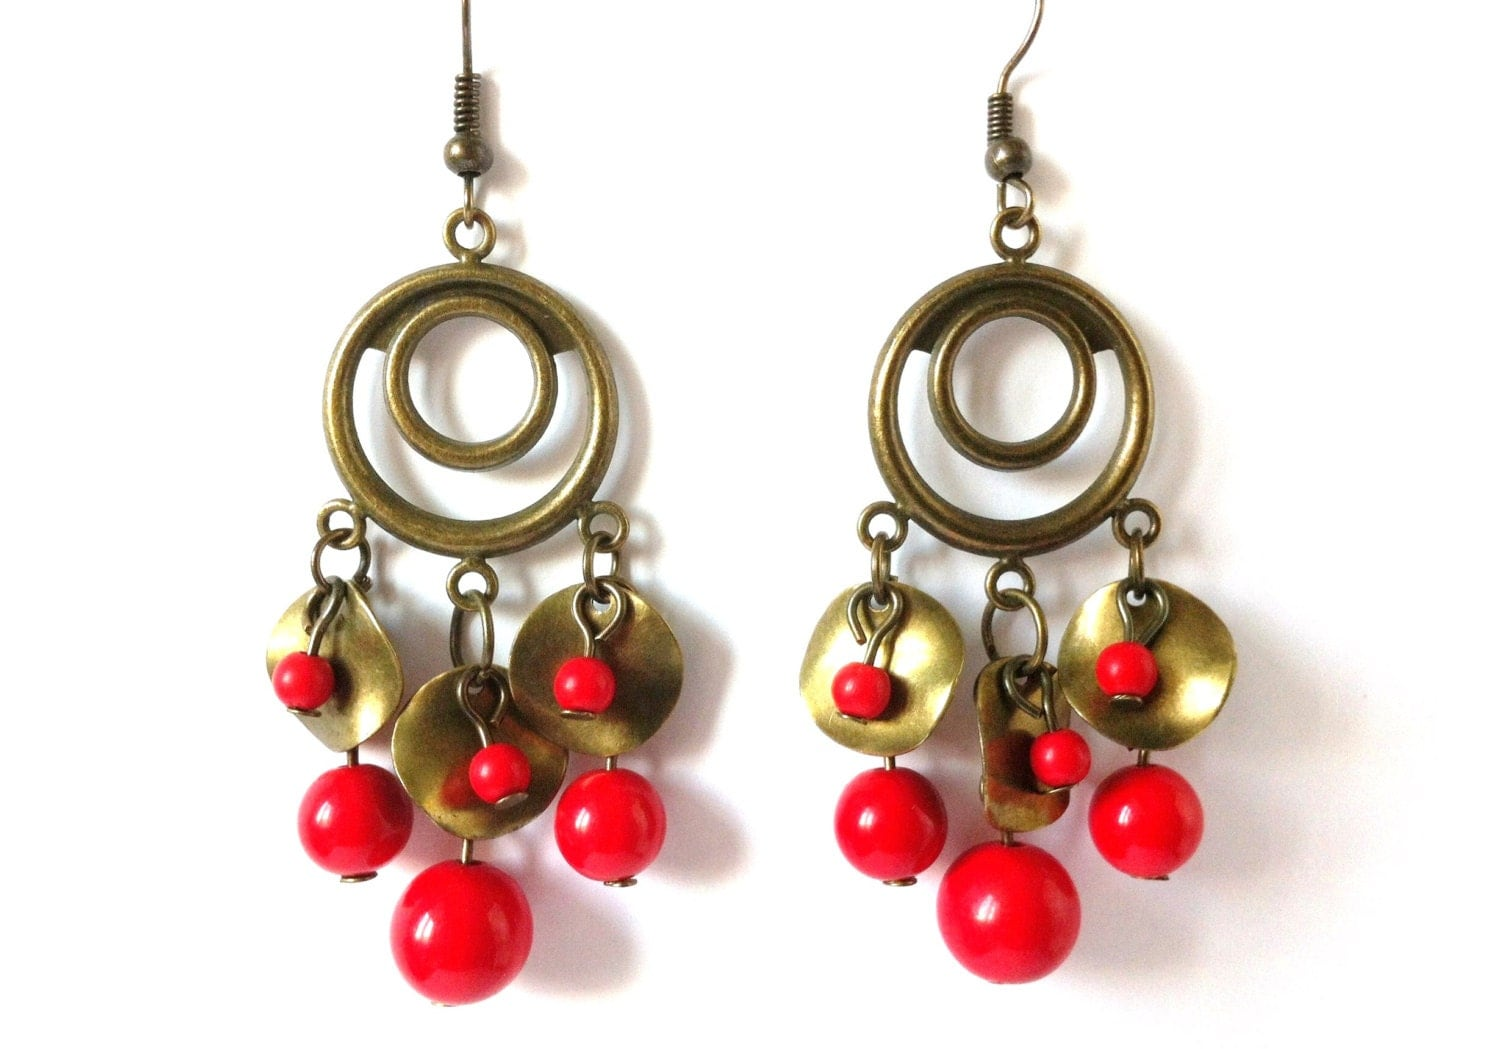 Buy low price, high quality long red earrings with worldwide shipping on downiloadojg.gq